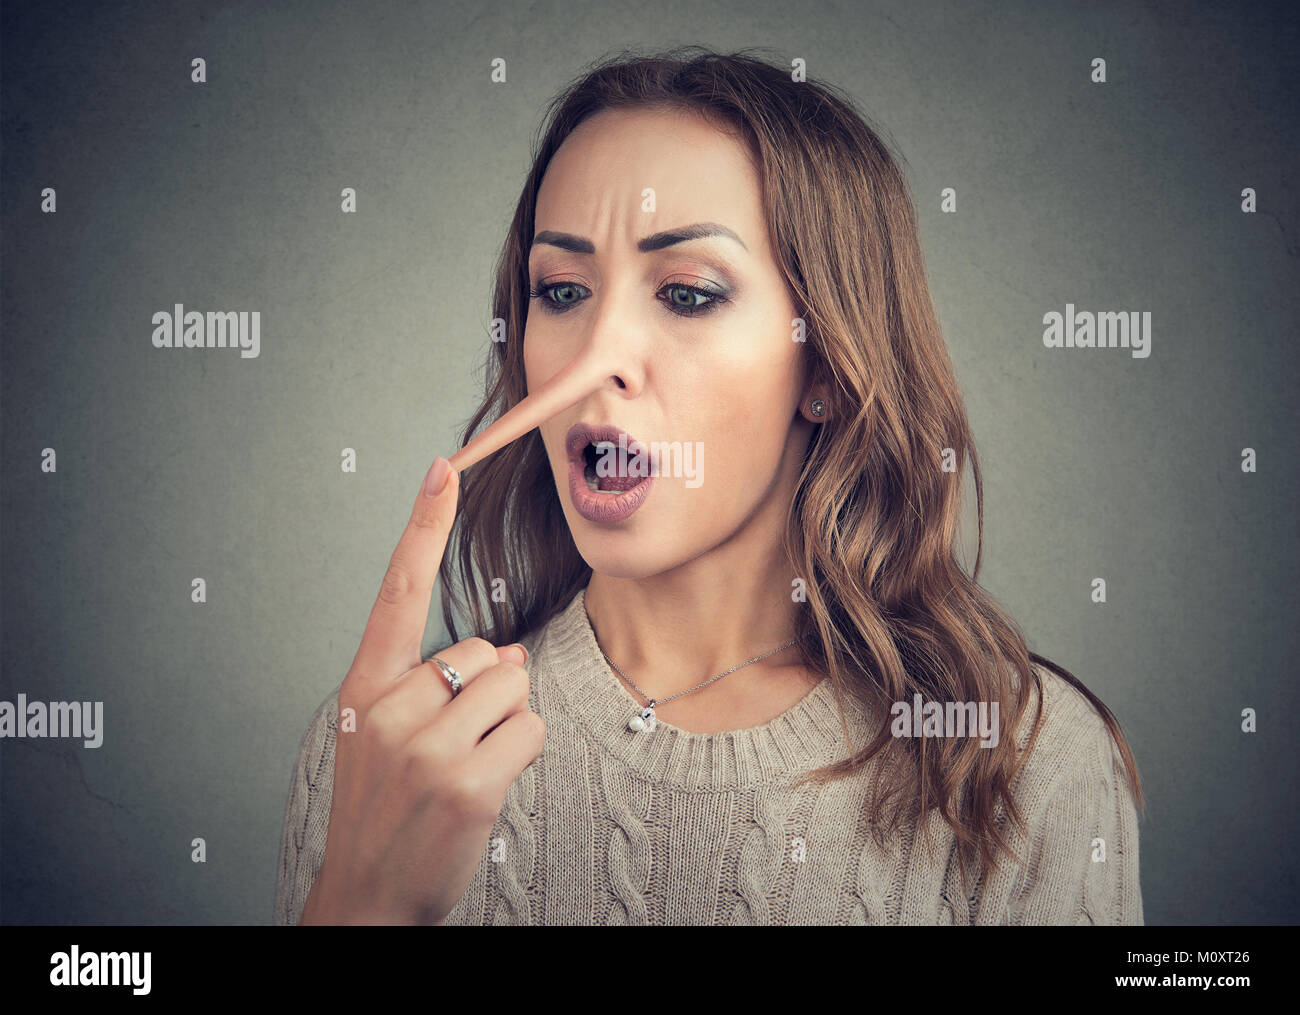 Young casual woman touching extended nose of liar looking shocked. - Stock Image